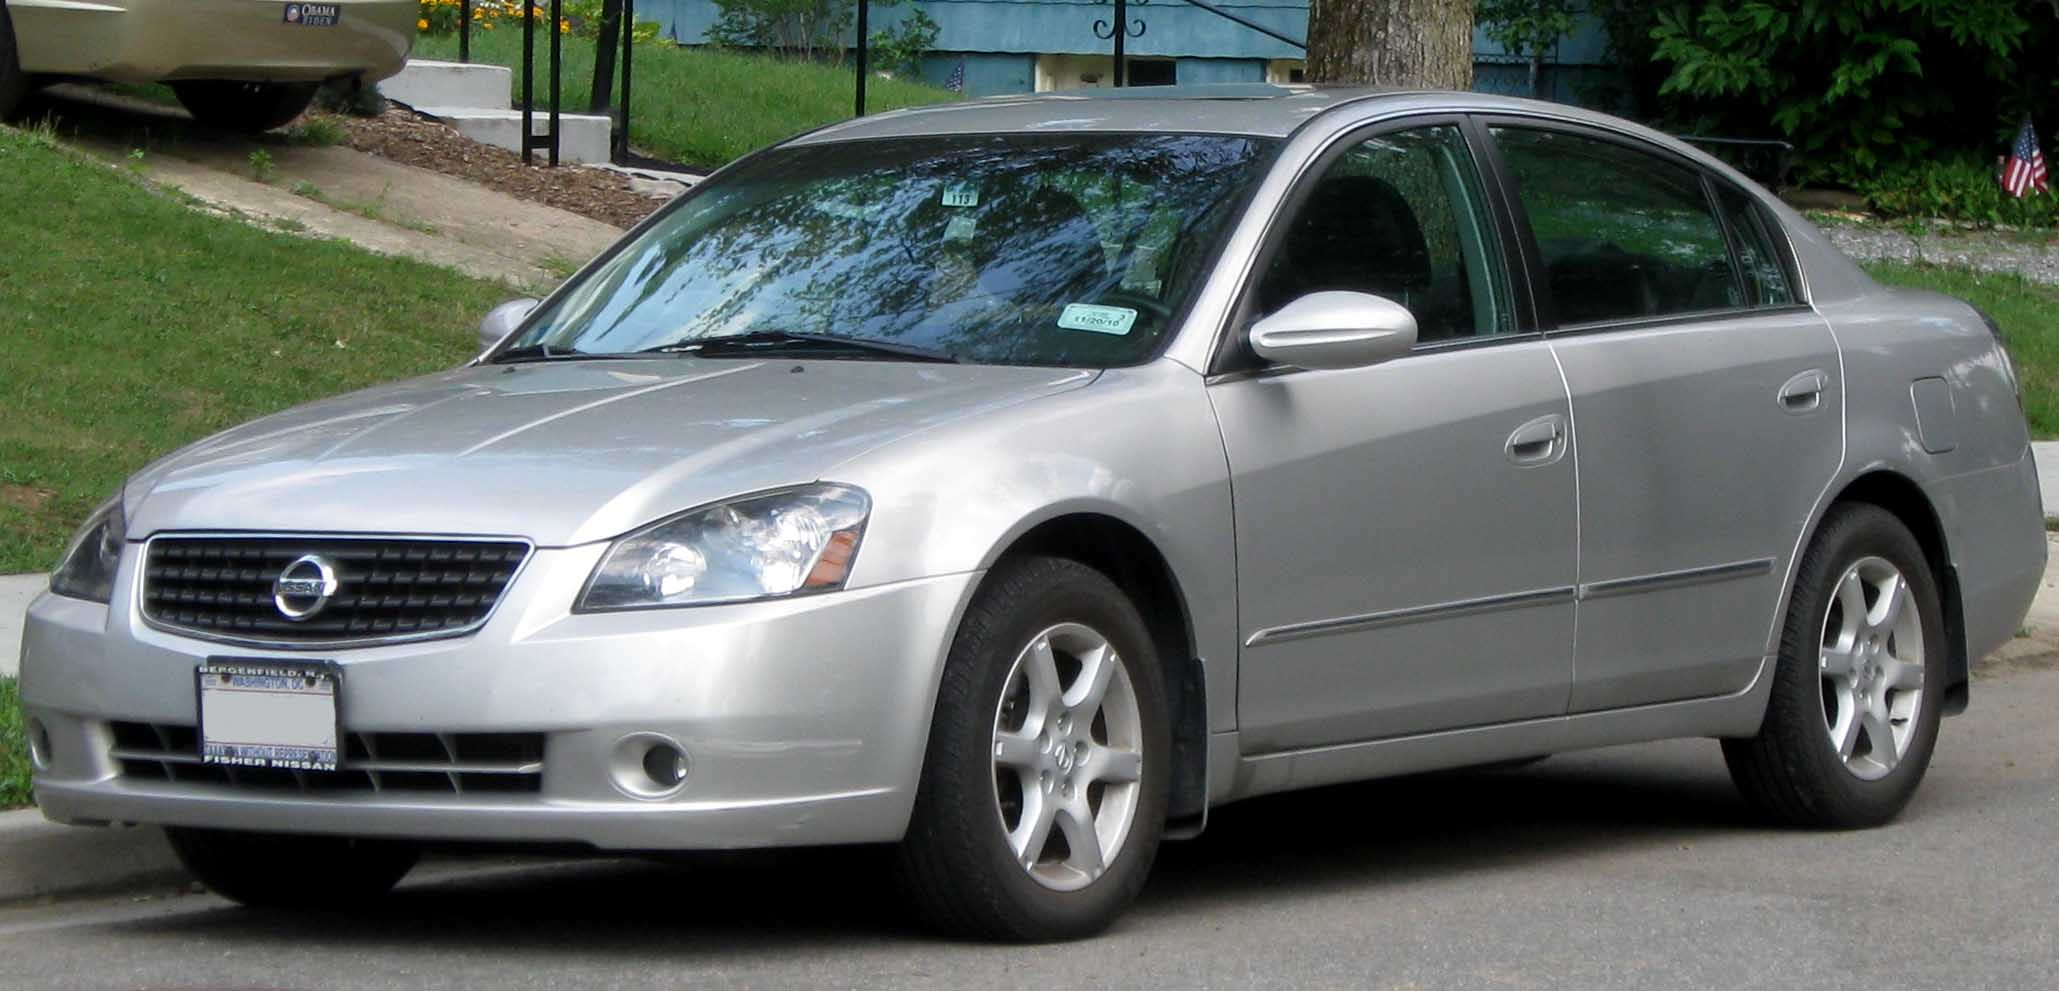 2006 Nissan Altima Information And Photos Momentcar